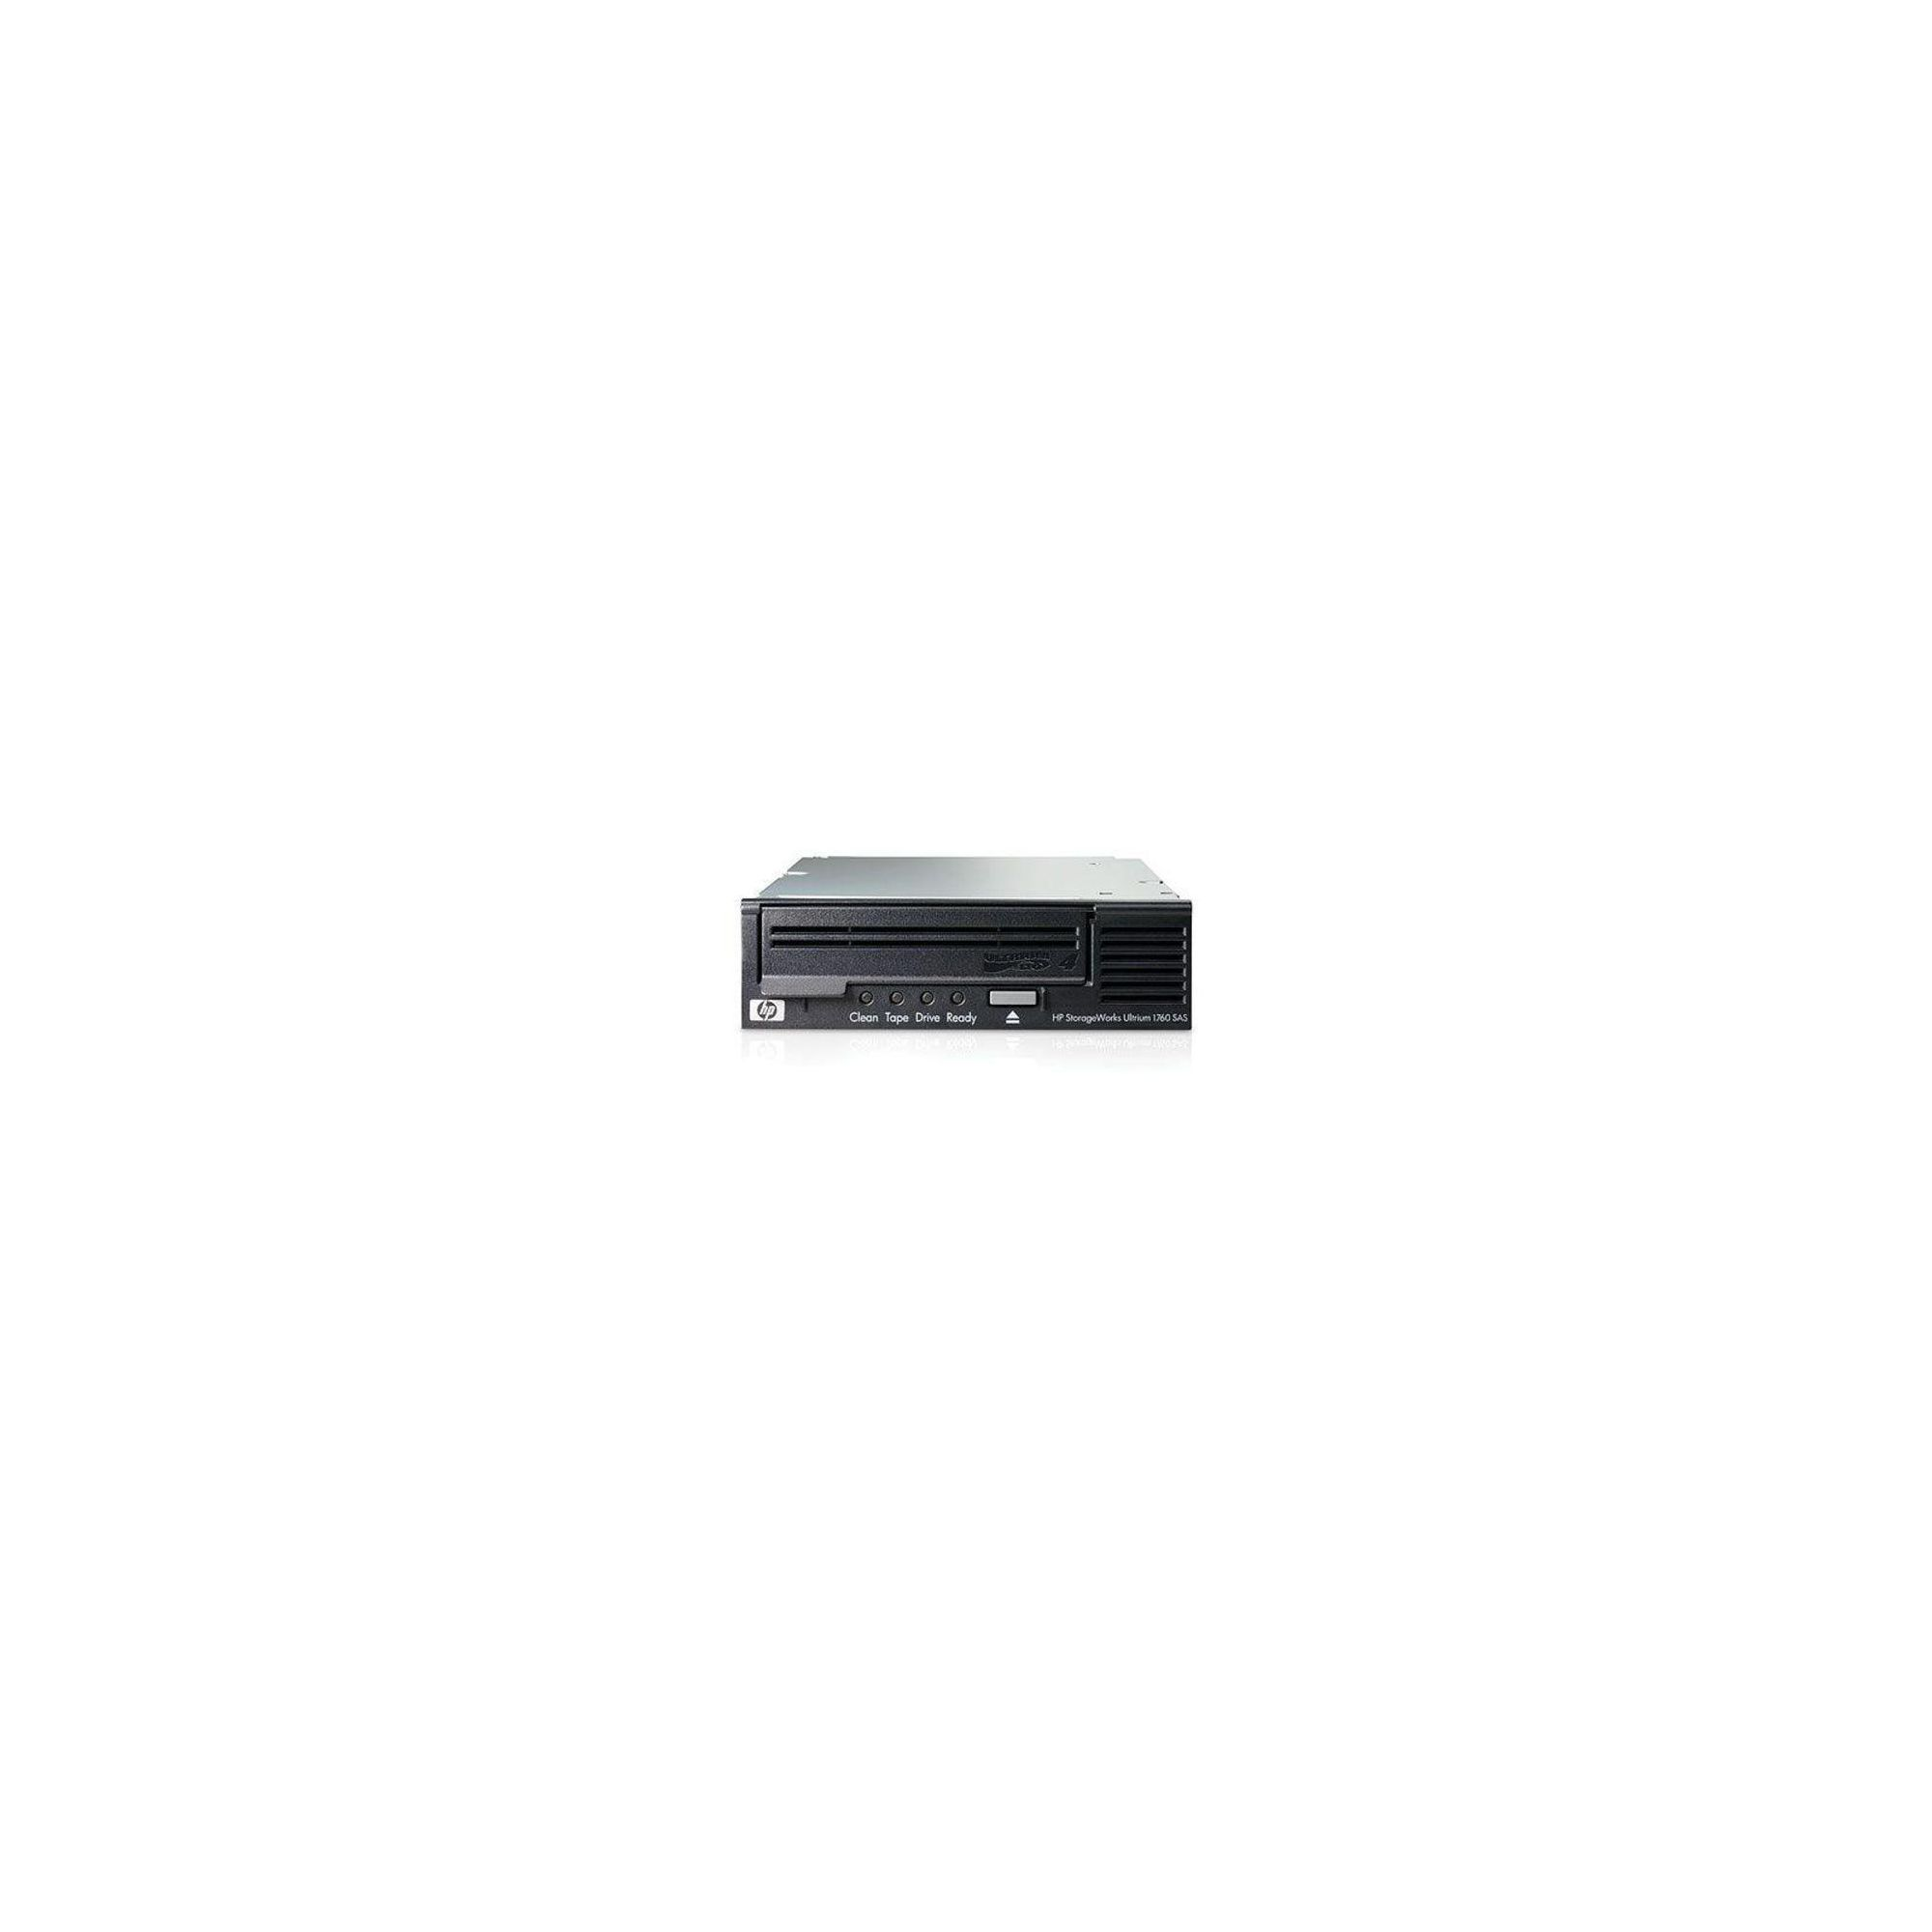 Hewlett-Packard StorageWorks LTO-4 Ultrium 1760 SAS Internal Tape Drive at Tescos Direct